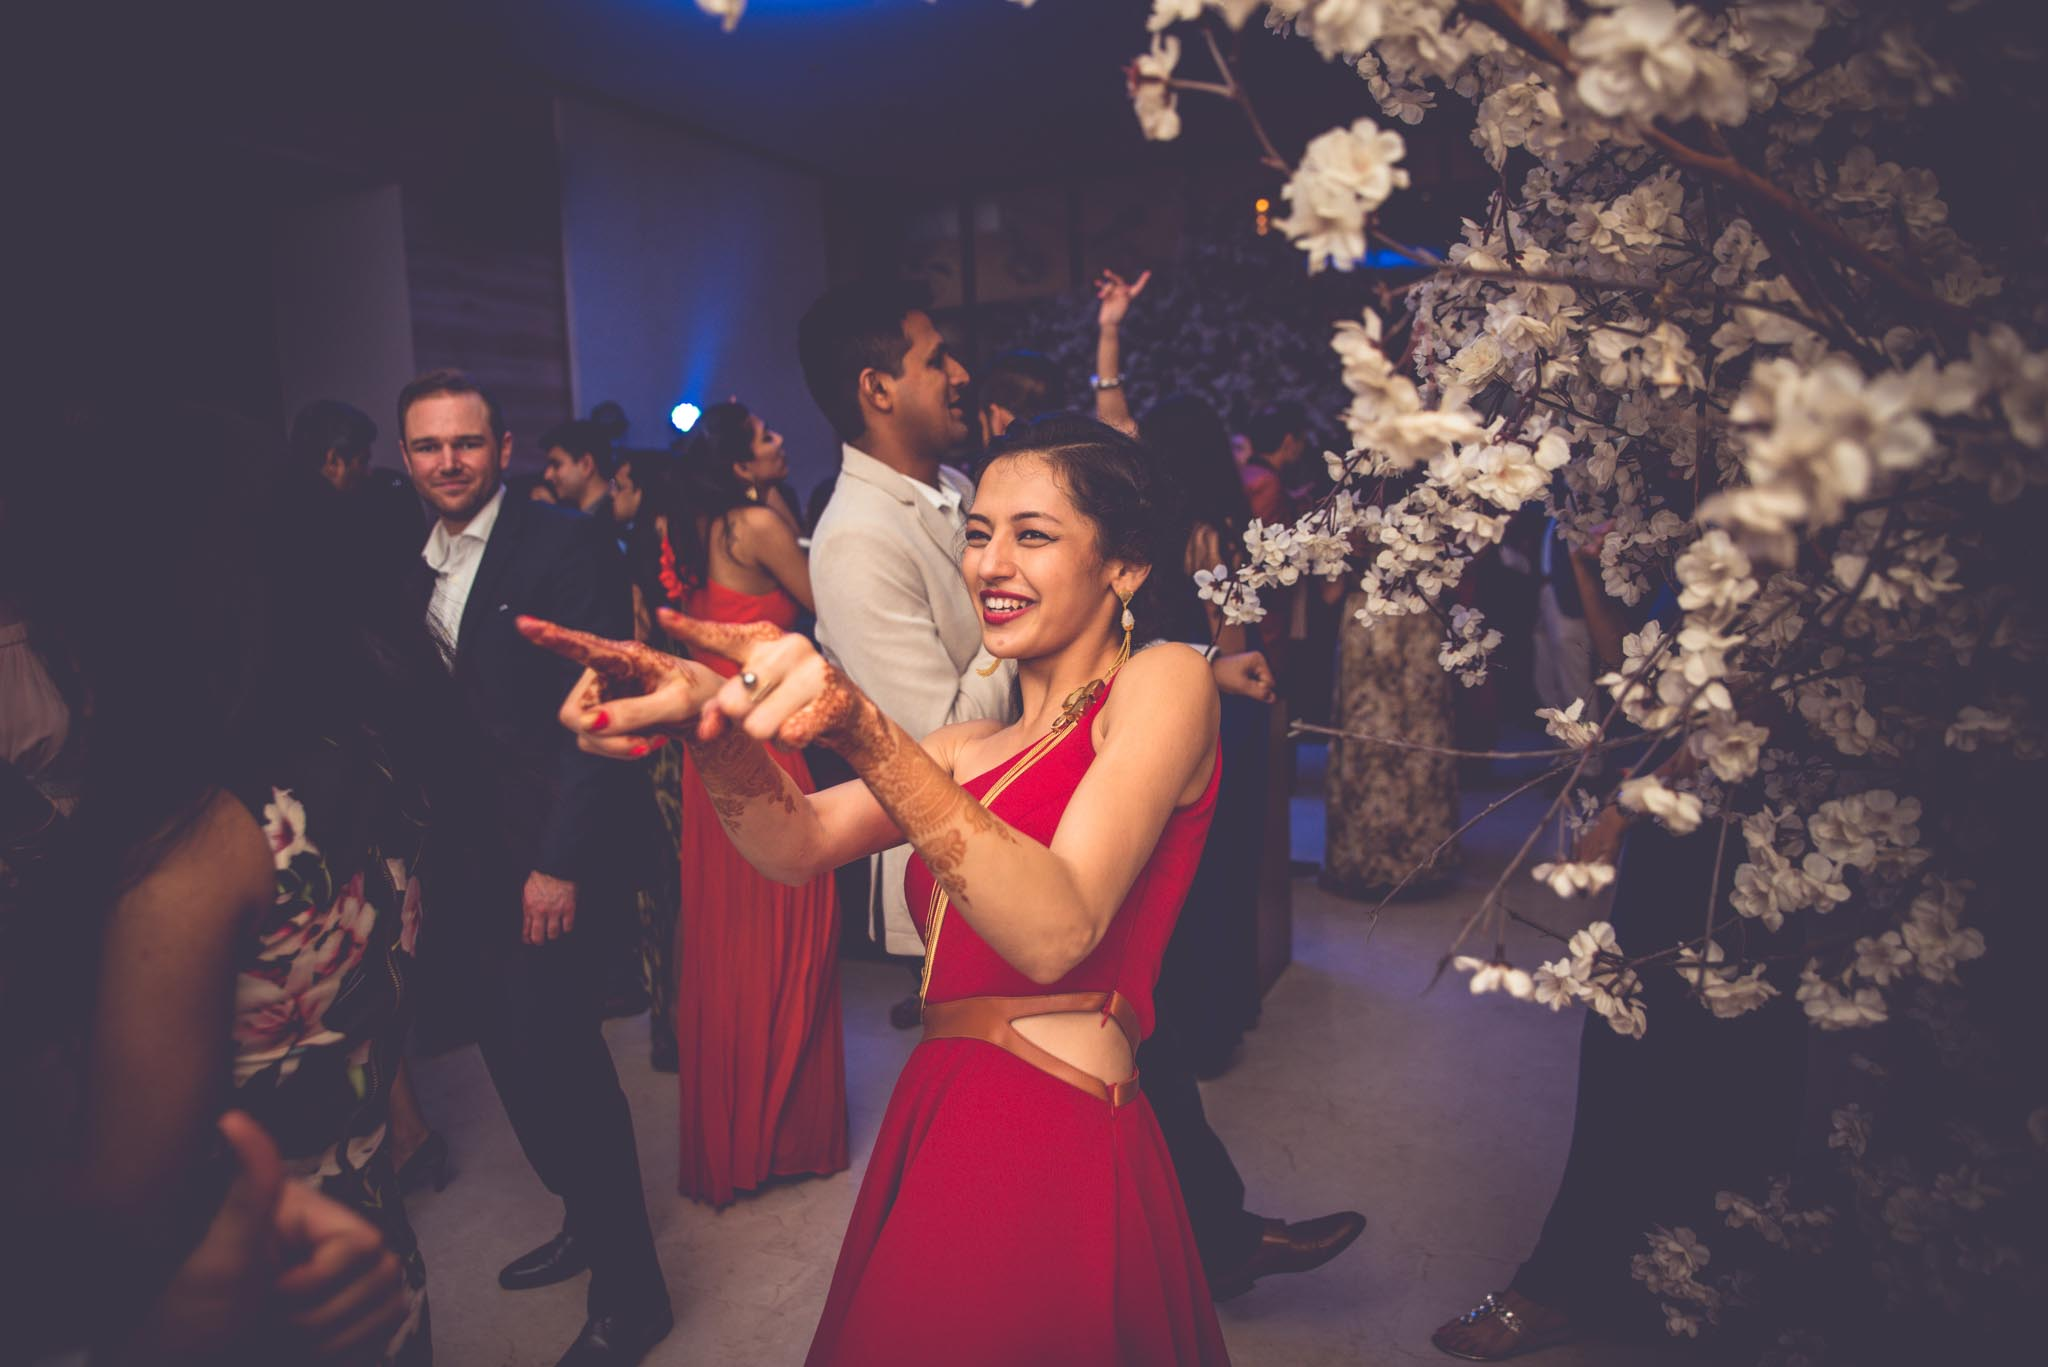 StRegis-Palladium-Mumbai-Candid-Wedding-Photography-11